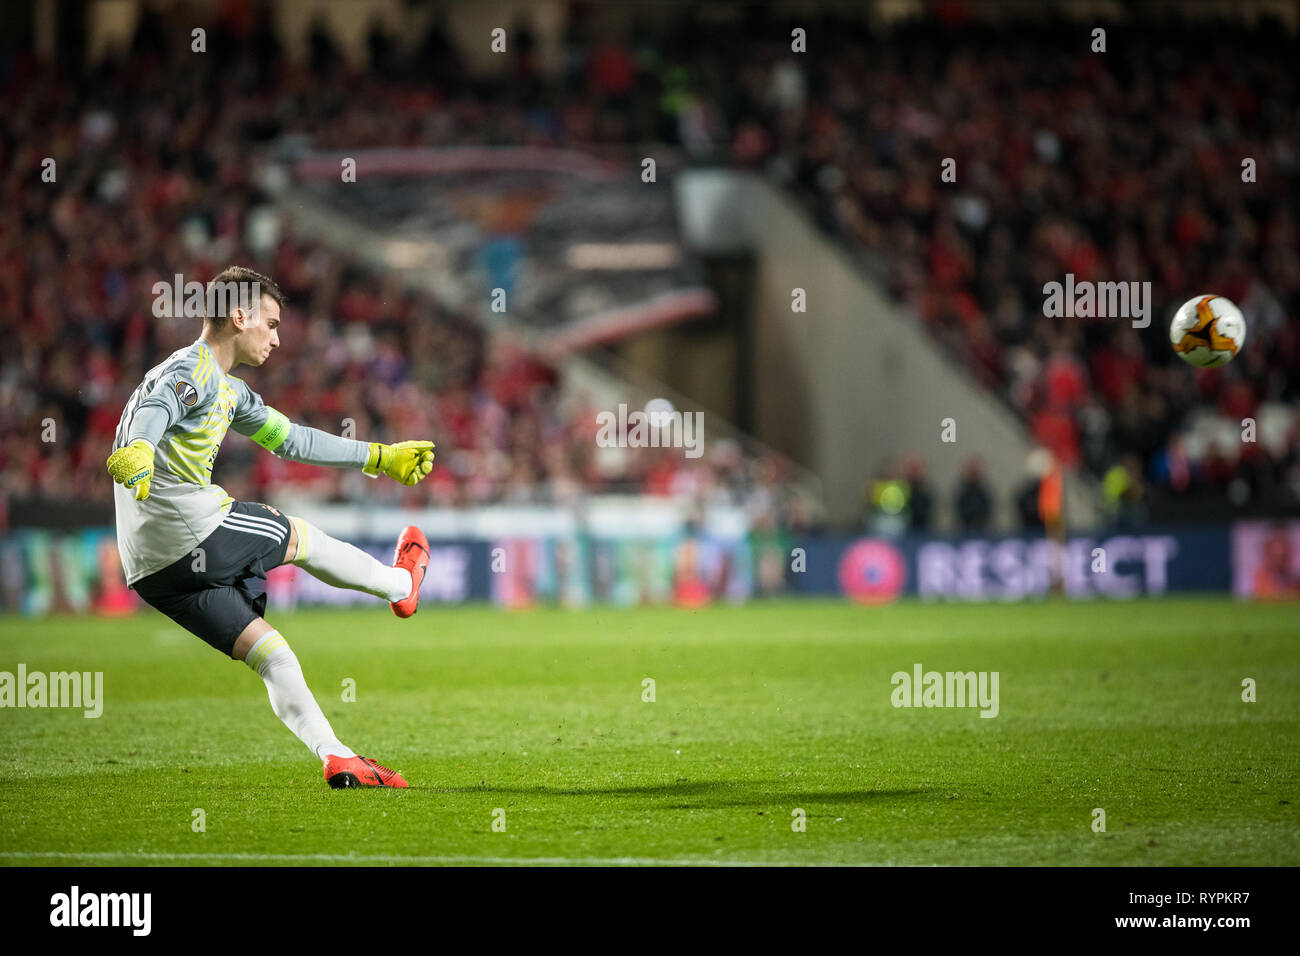 Dominik Livakovic Of Gnk Dinamo Zagreb In Action During The Europa League 2018 2019 Football Match Between Sl Benfica Vs Gnk Dinamo Zagreb Final Score Sl Benfica 3 0 Gnk Dinamo Zagreb Stock Photo Alamy